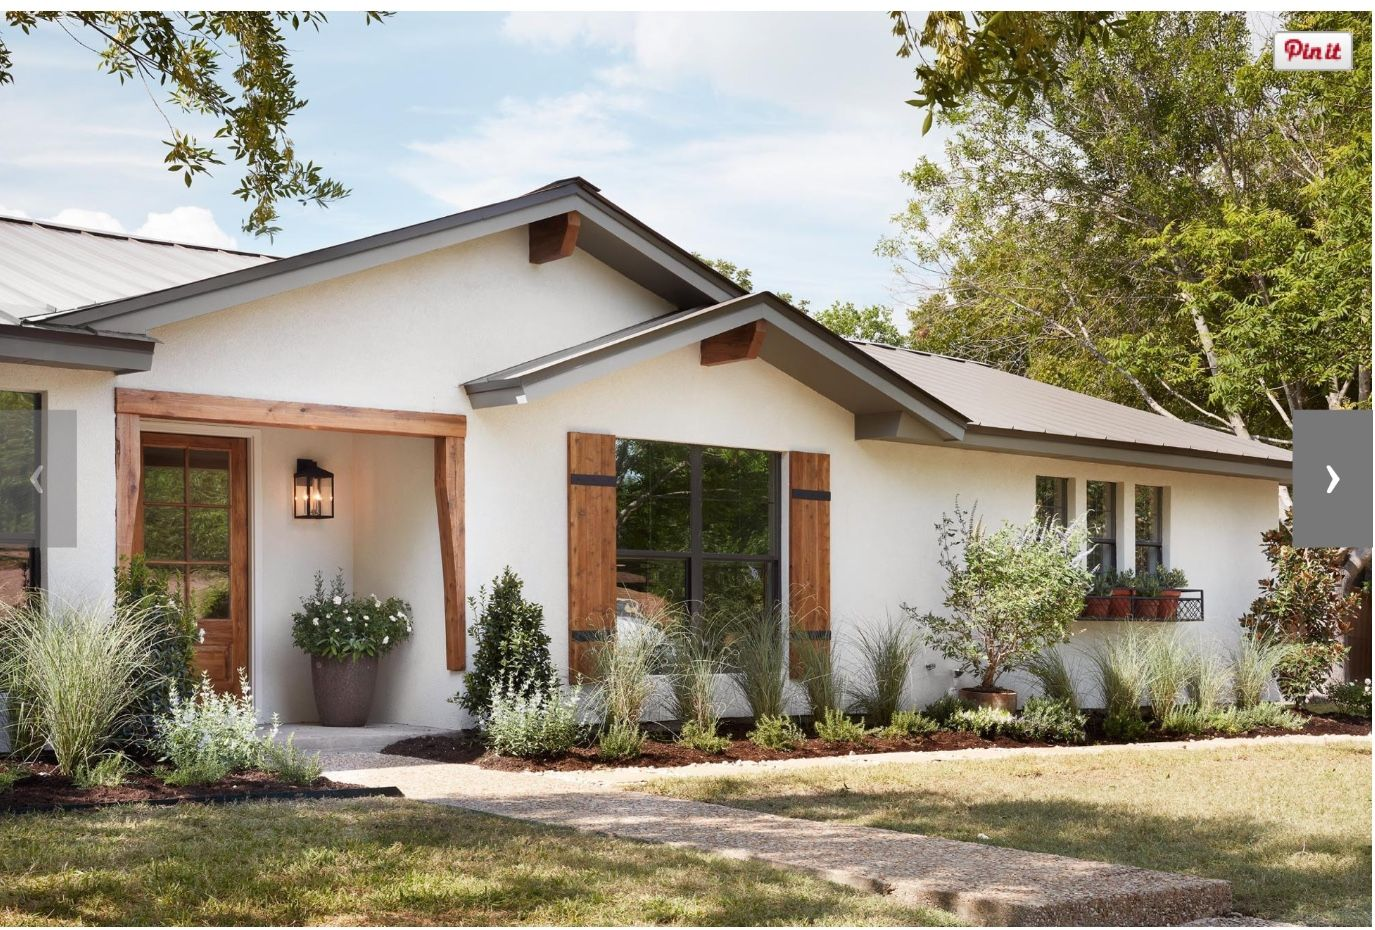 White Rustic Ranch In 2019 Exterior House Colors Modern